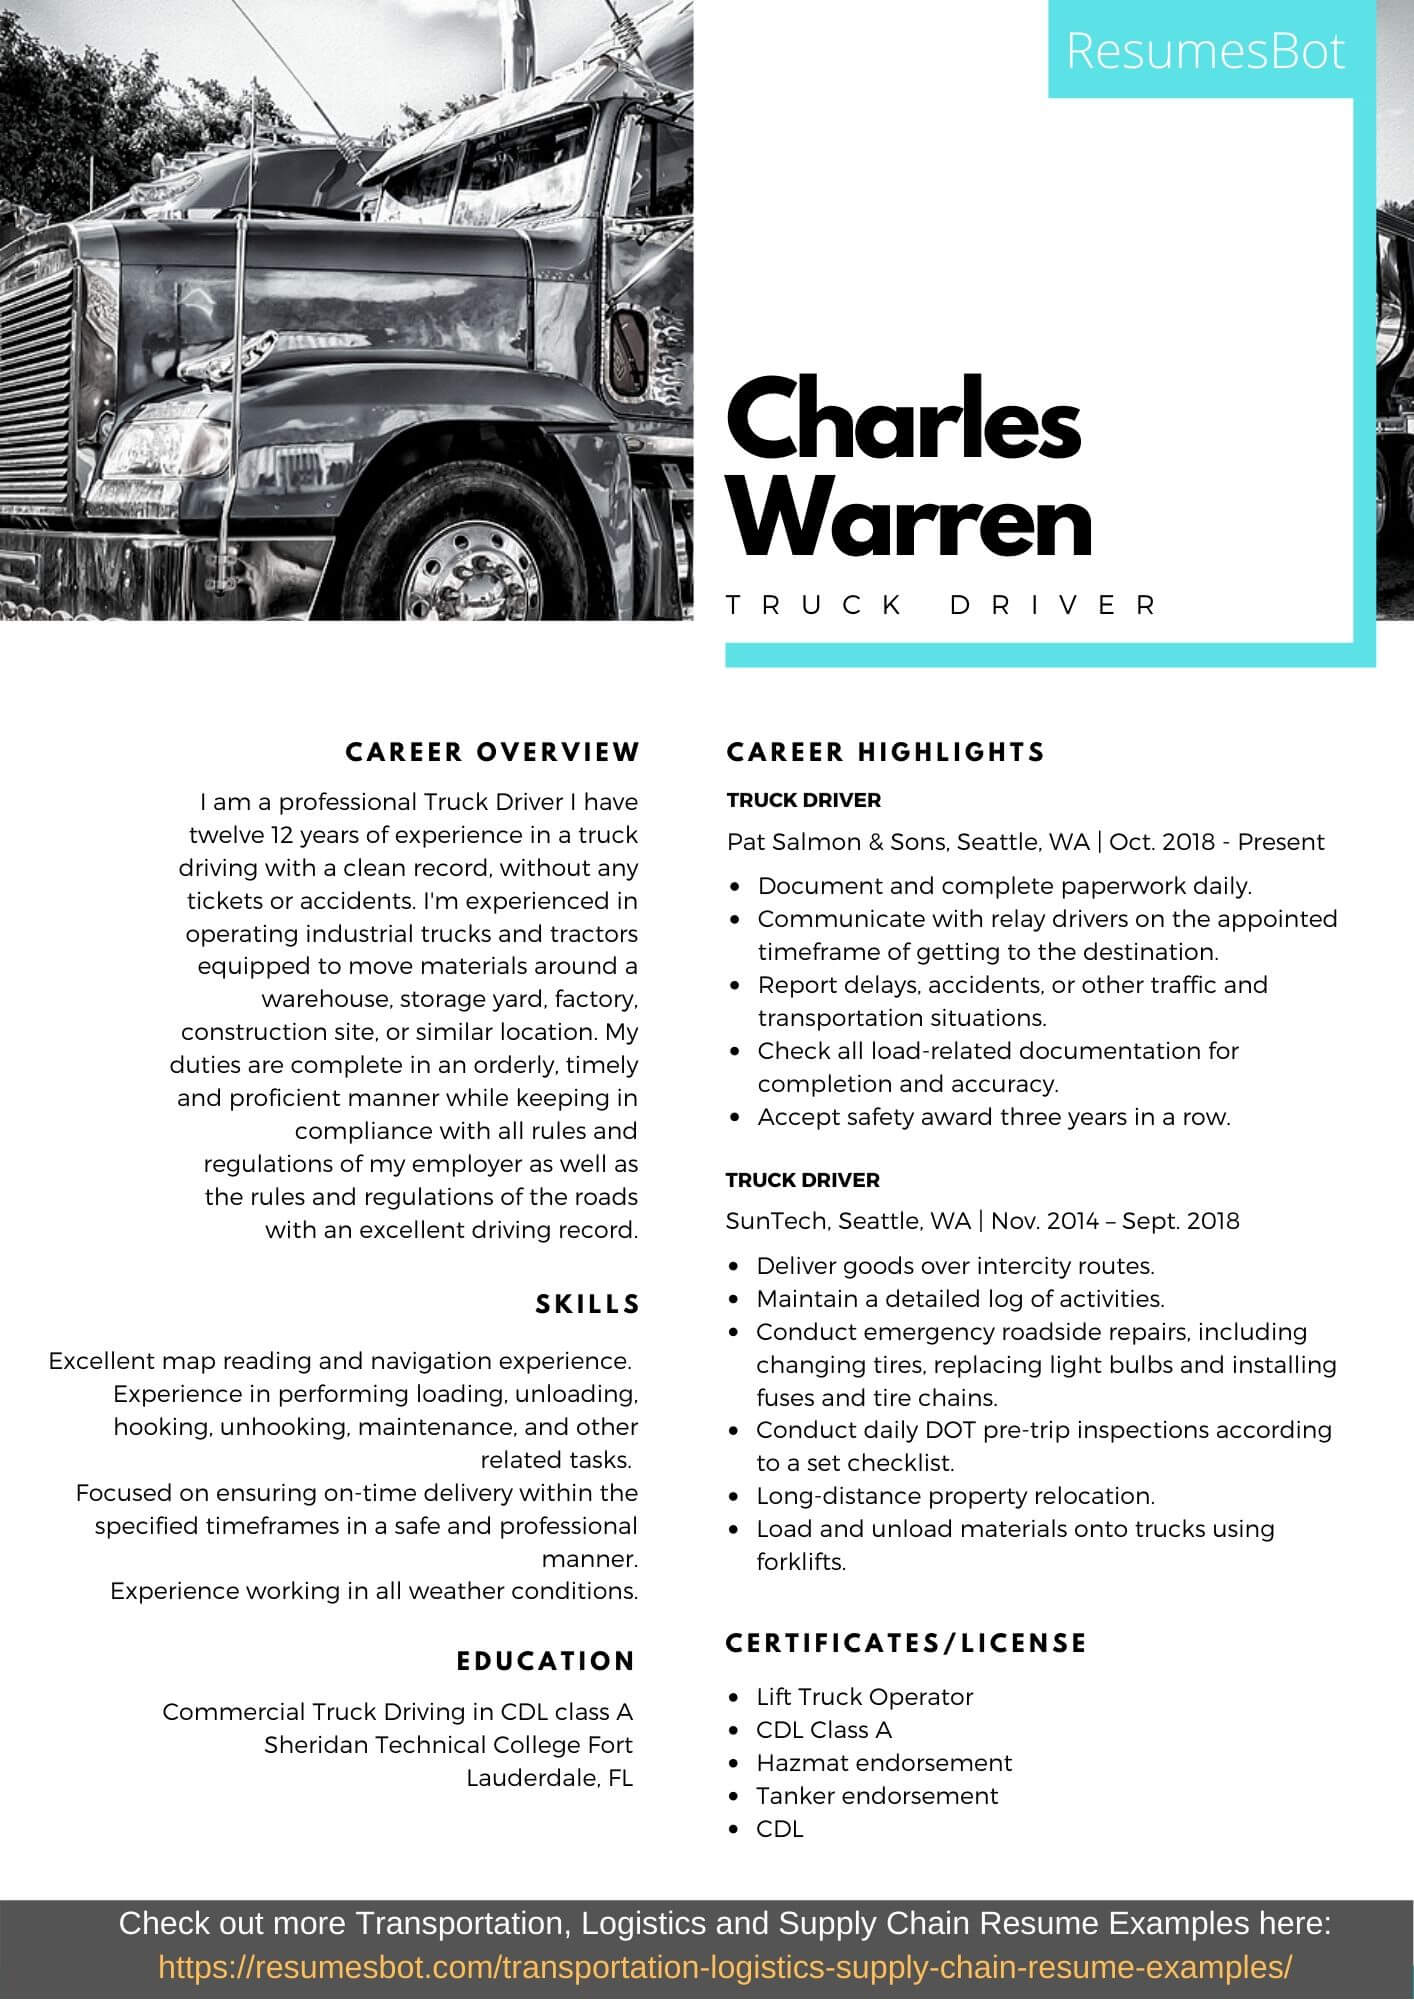 truck driver resume samples and tips pdf resumes bot cdl example group writer seattle Resume Cdl Truck Driver Resume